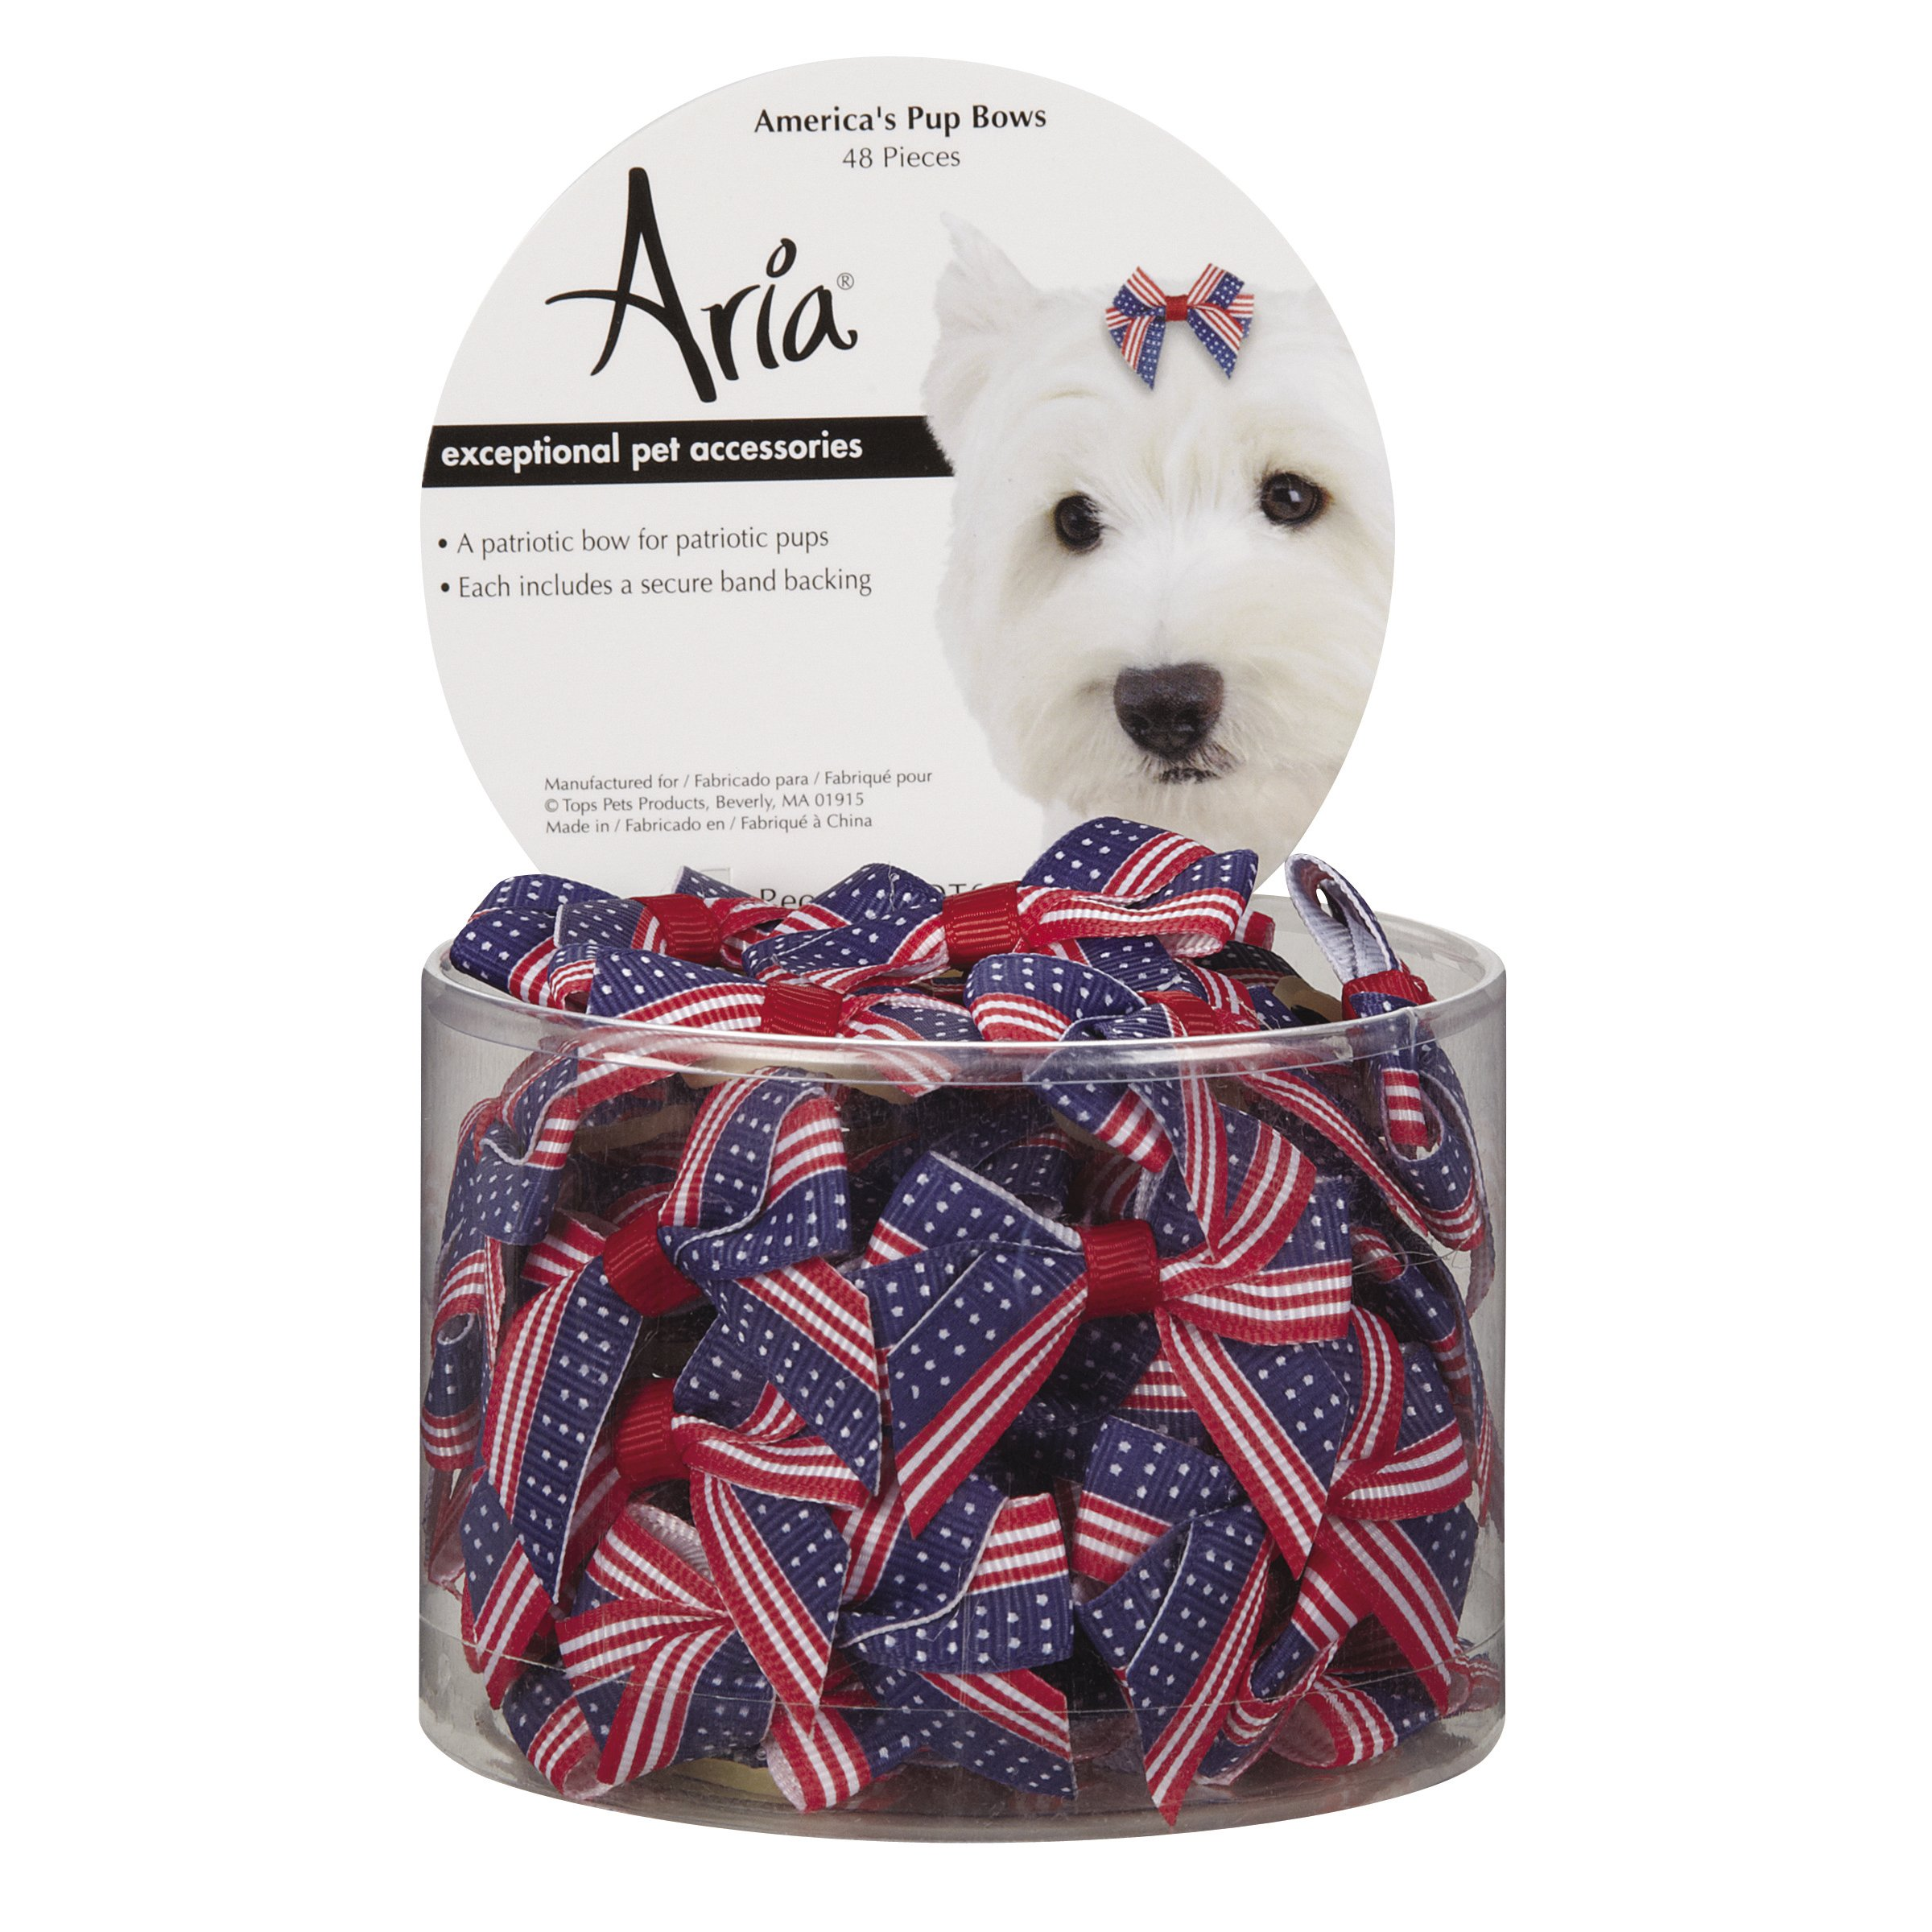 Aria America's Pup Bows for Dogs, 48-Piece Canisters by Aria